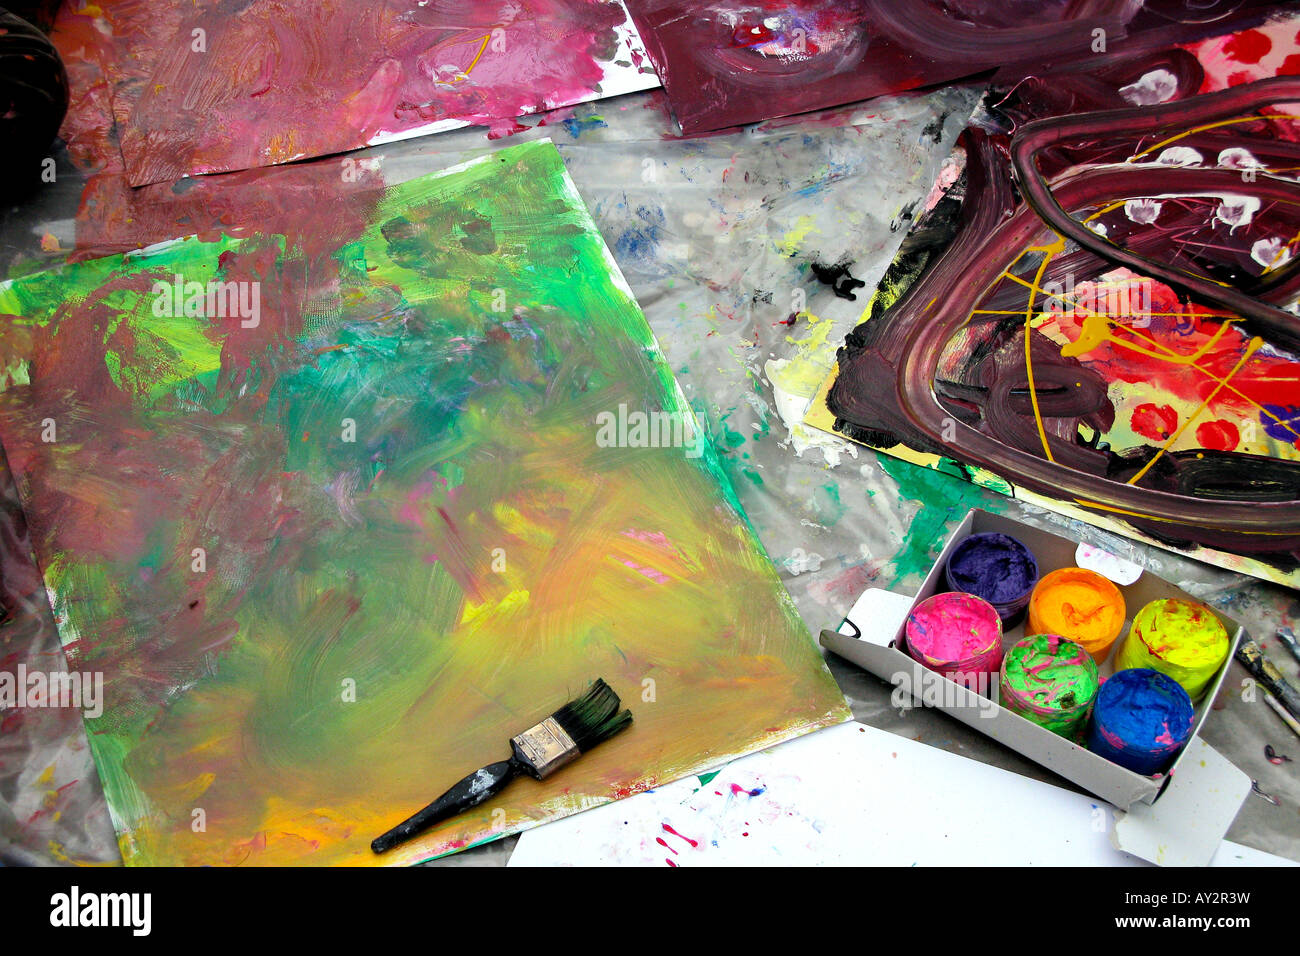 art materials and paintings laying on floor - Stock Image